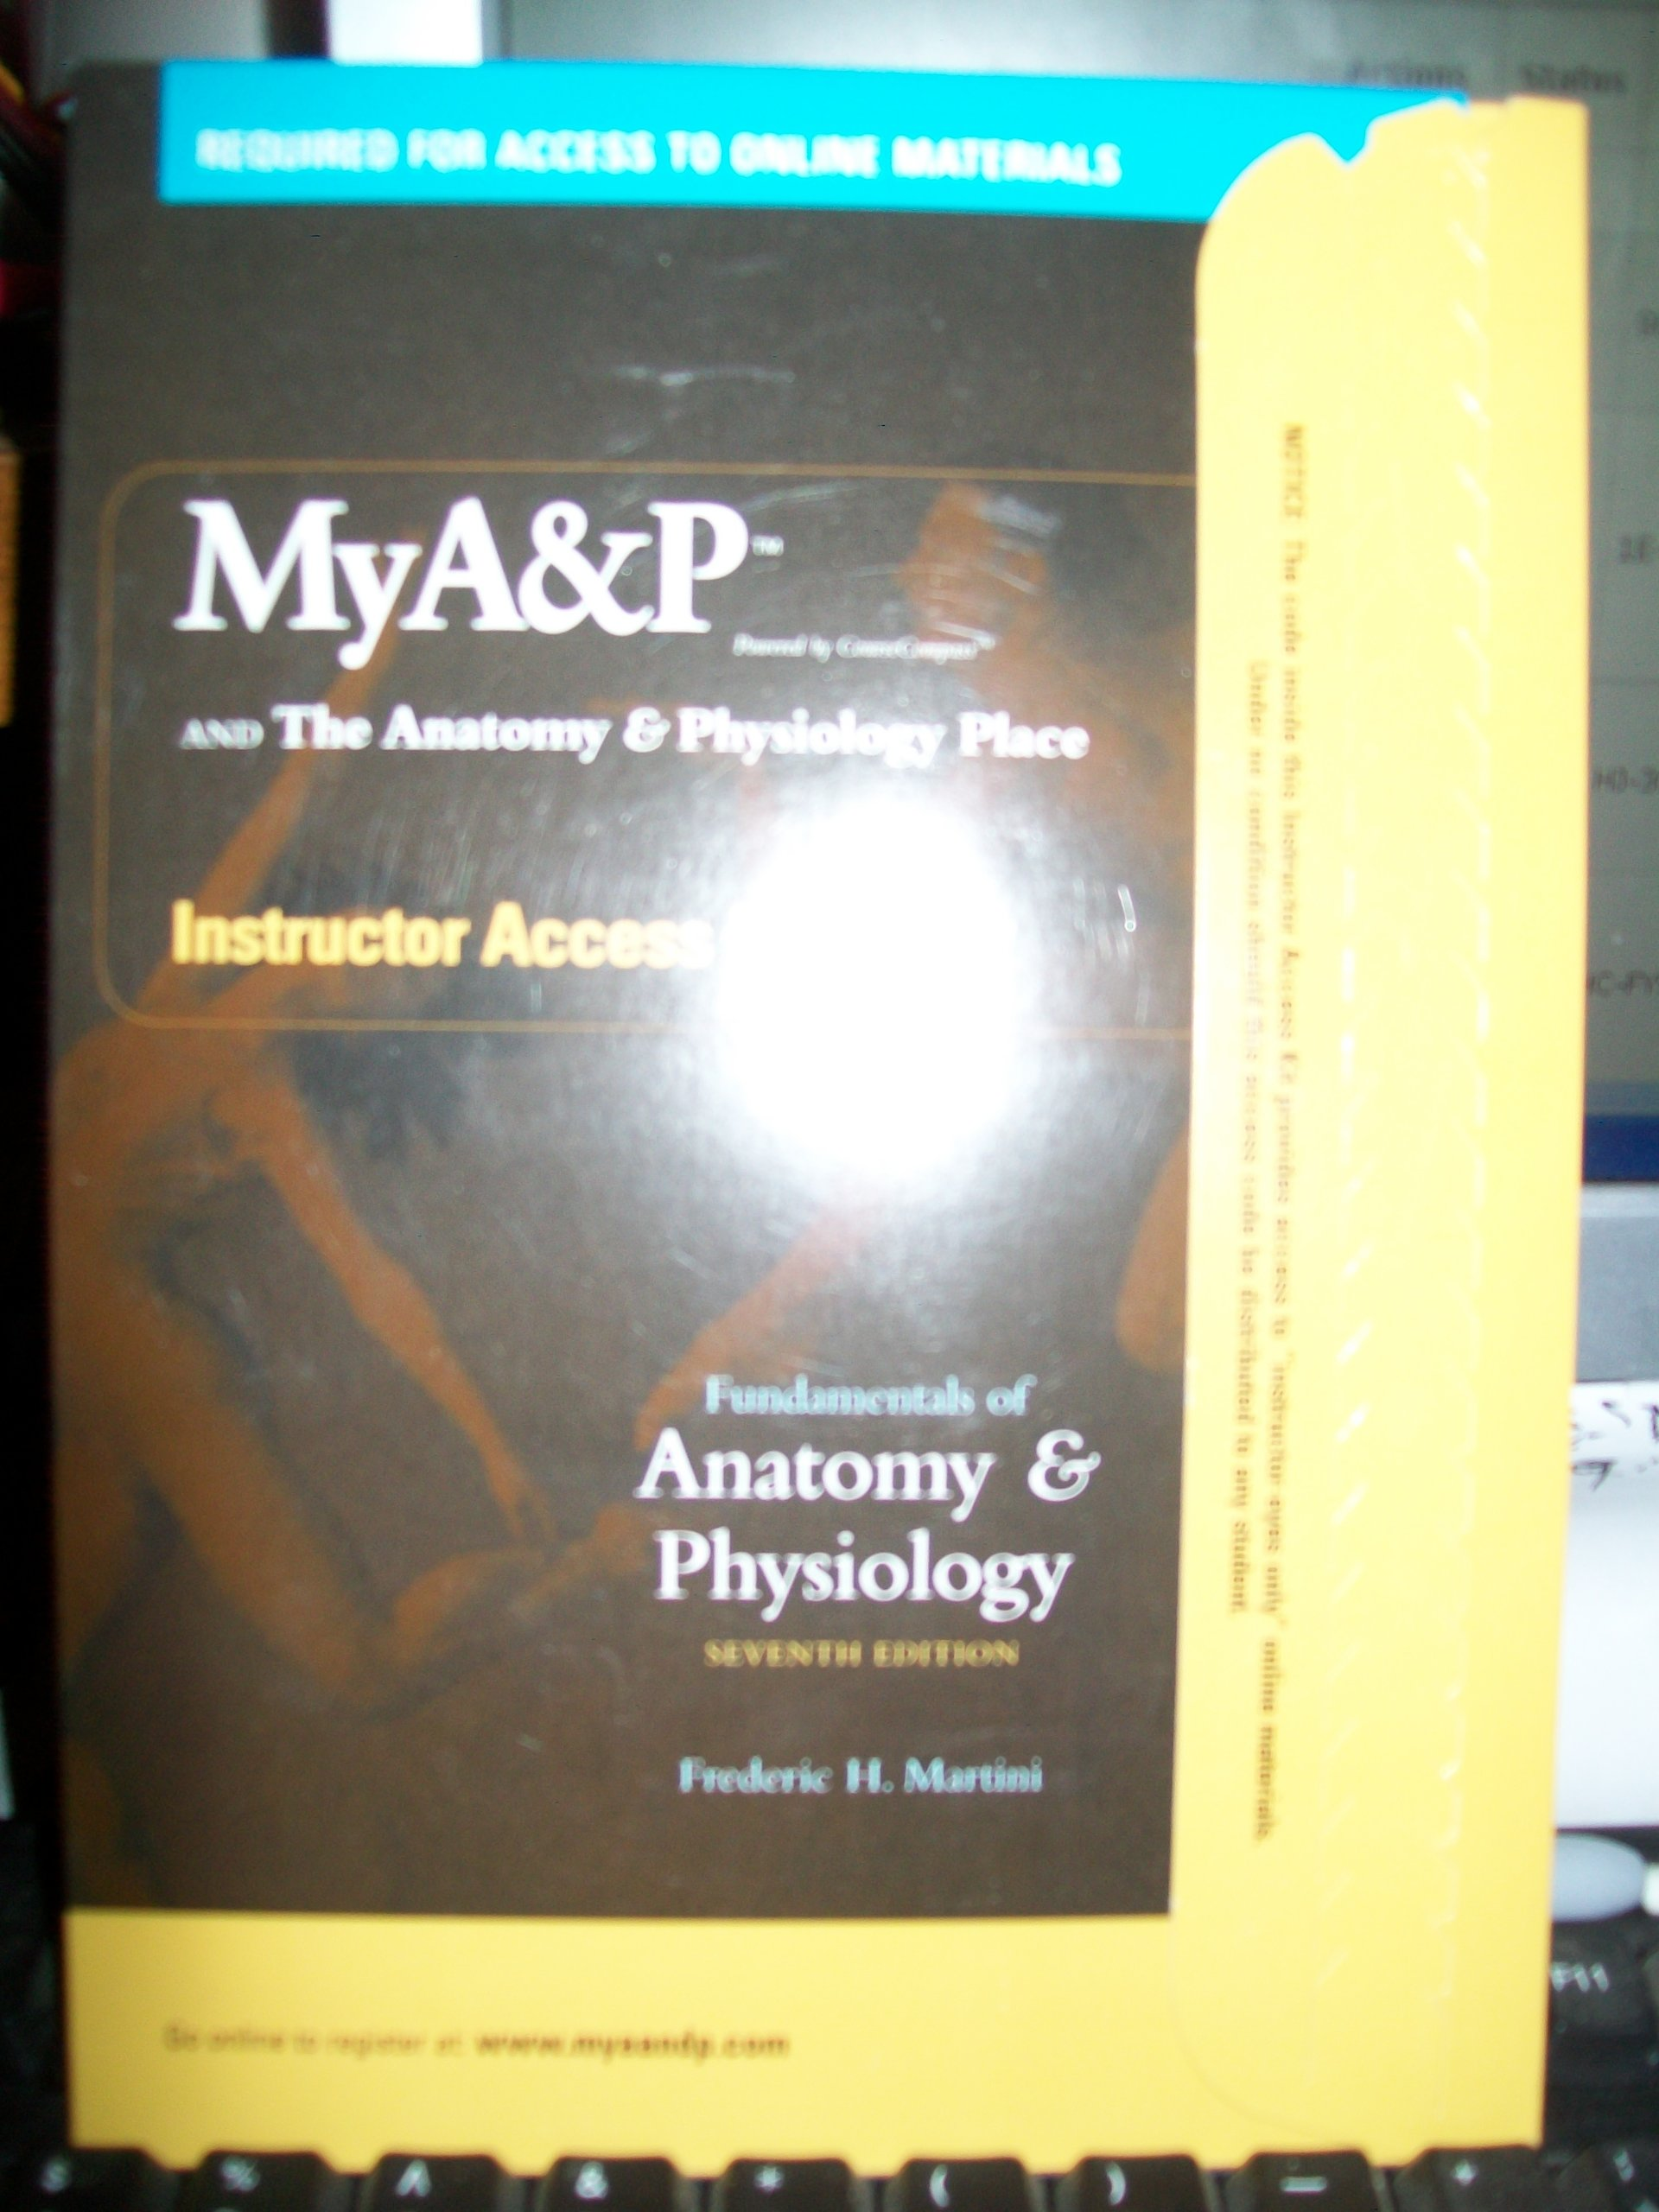 My A&P and the Anatomy & Physiology Place Instructor Access Kit ...